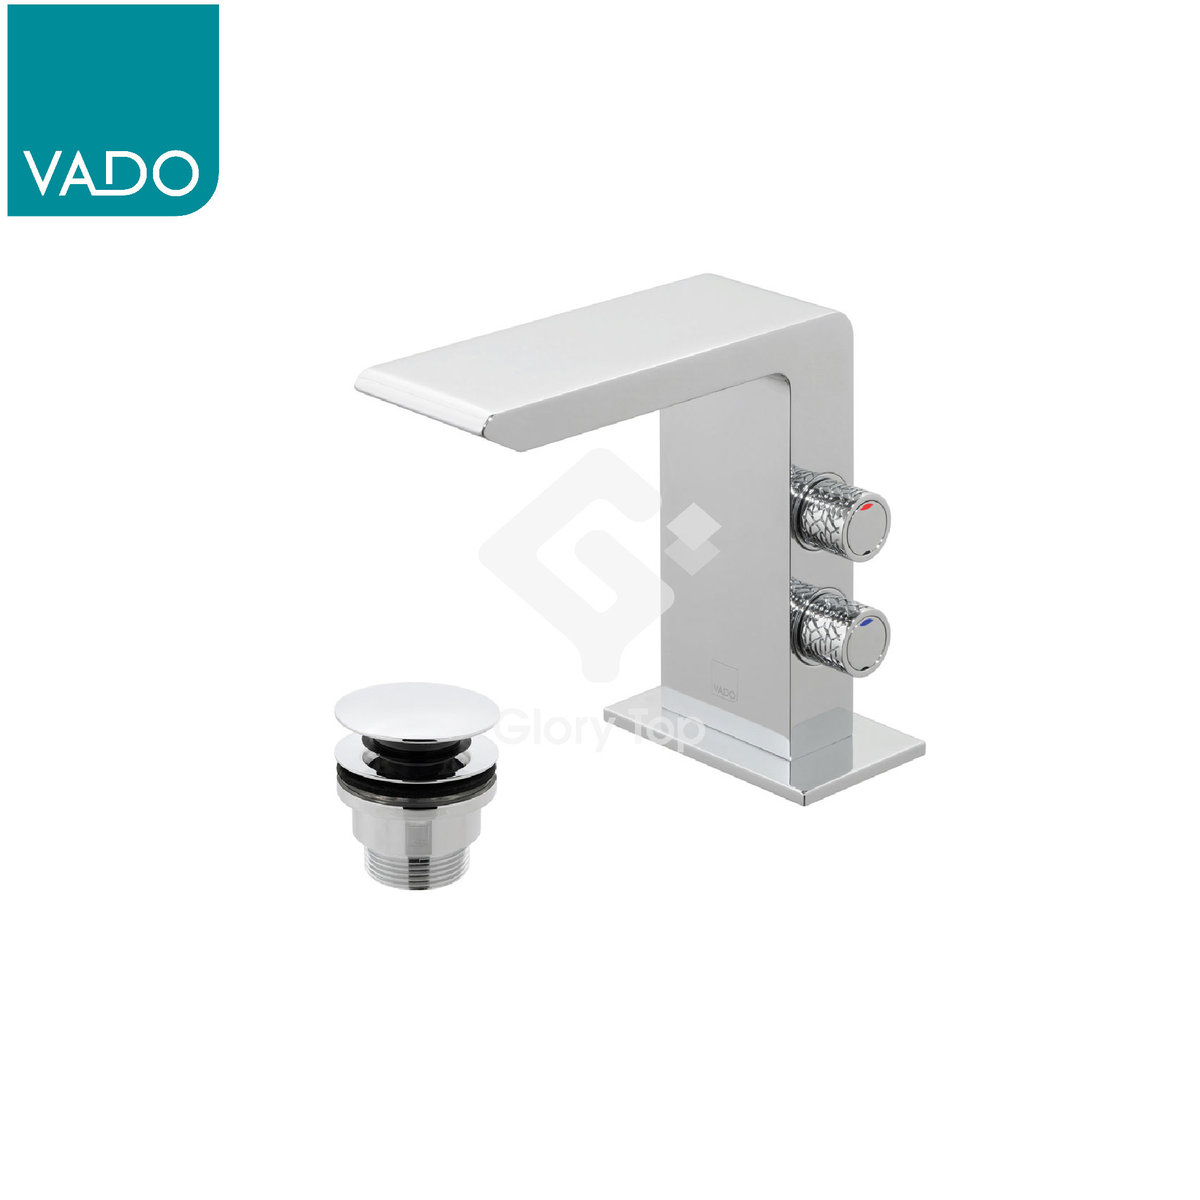 UK 'OMIKA' Deck Mounted Basin Mixer with wastes fitting